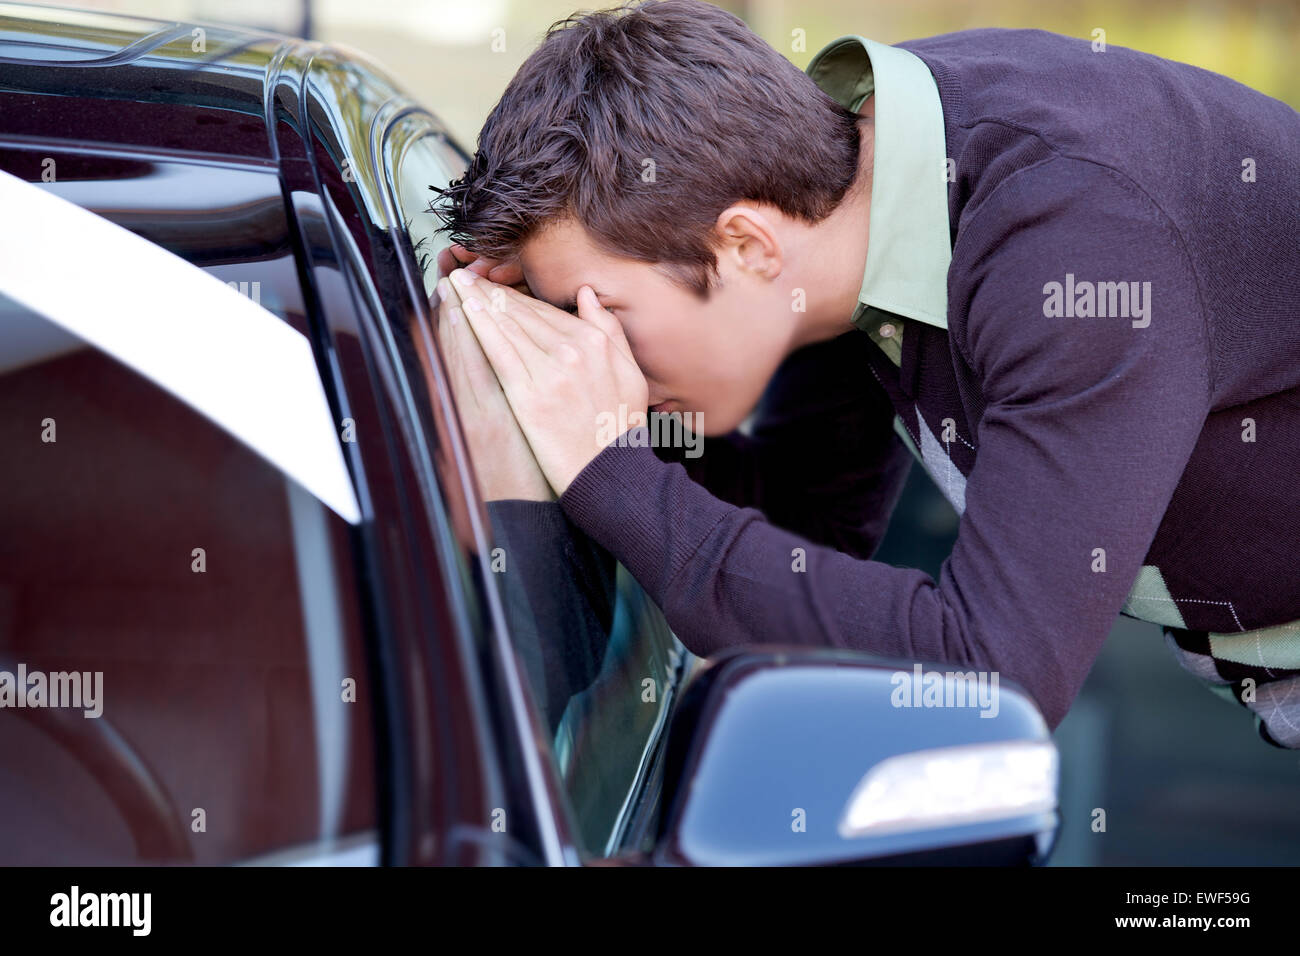 Young man looking at new car - Stock Image